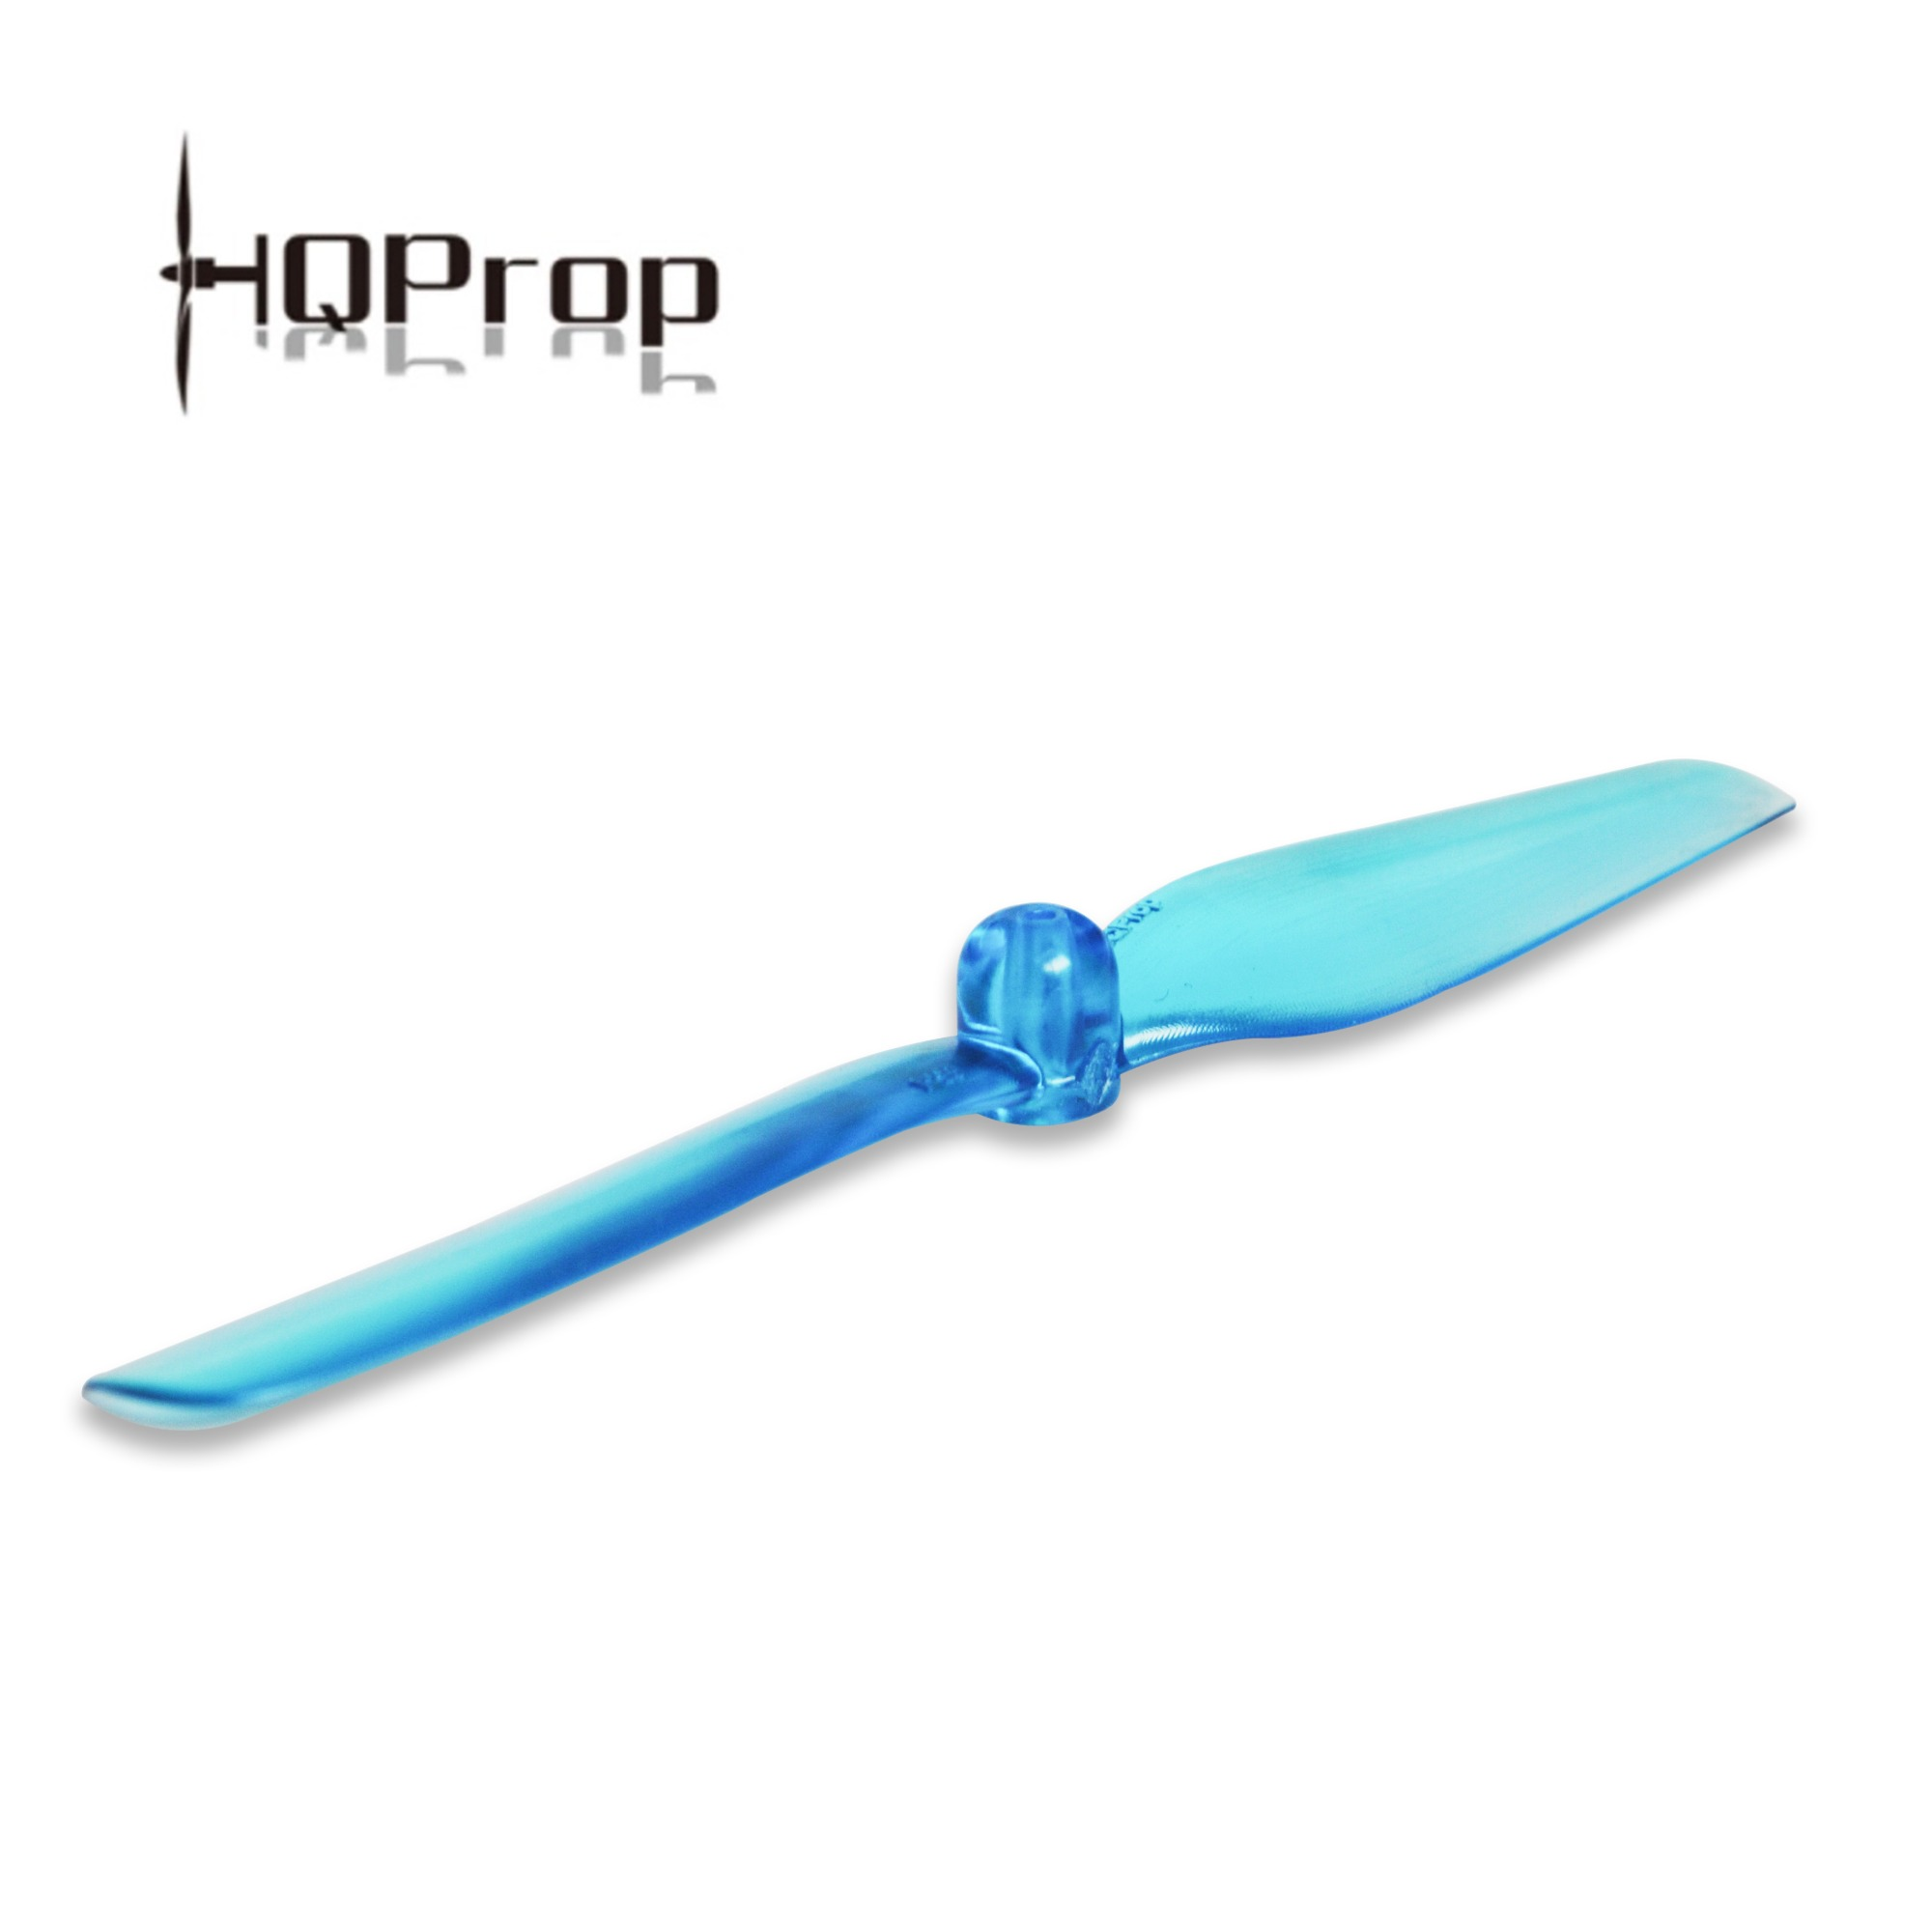 HQ Micro Prop 65mm 2-Blade Propellers (1.5mm Shaft/Blue)